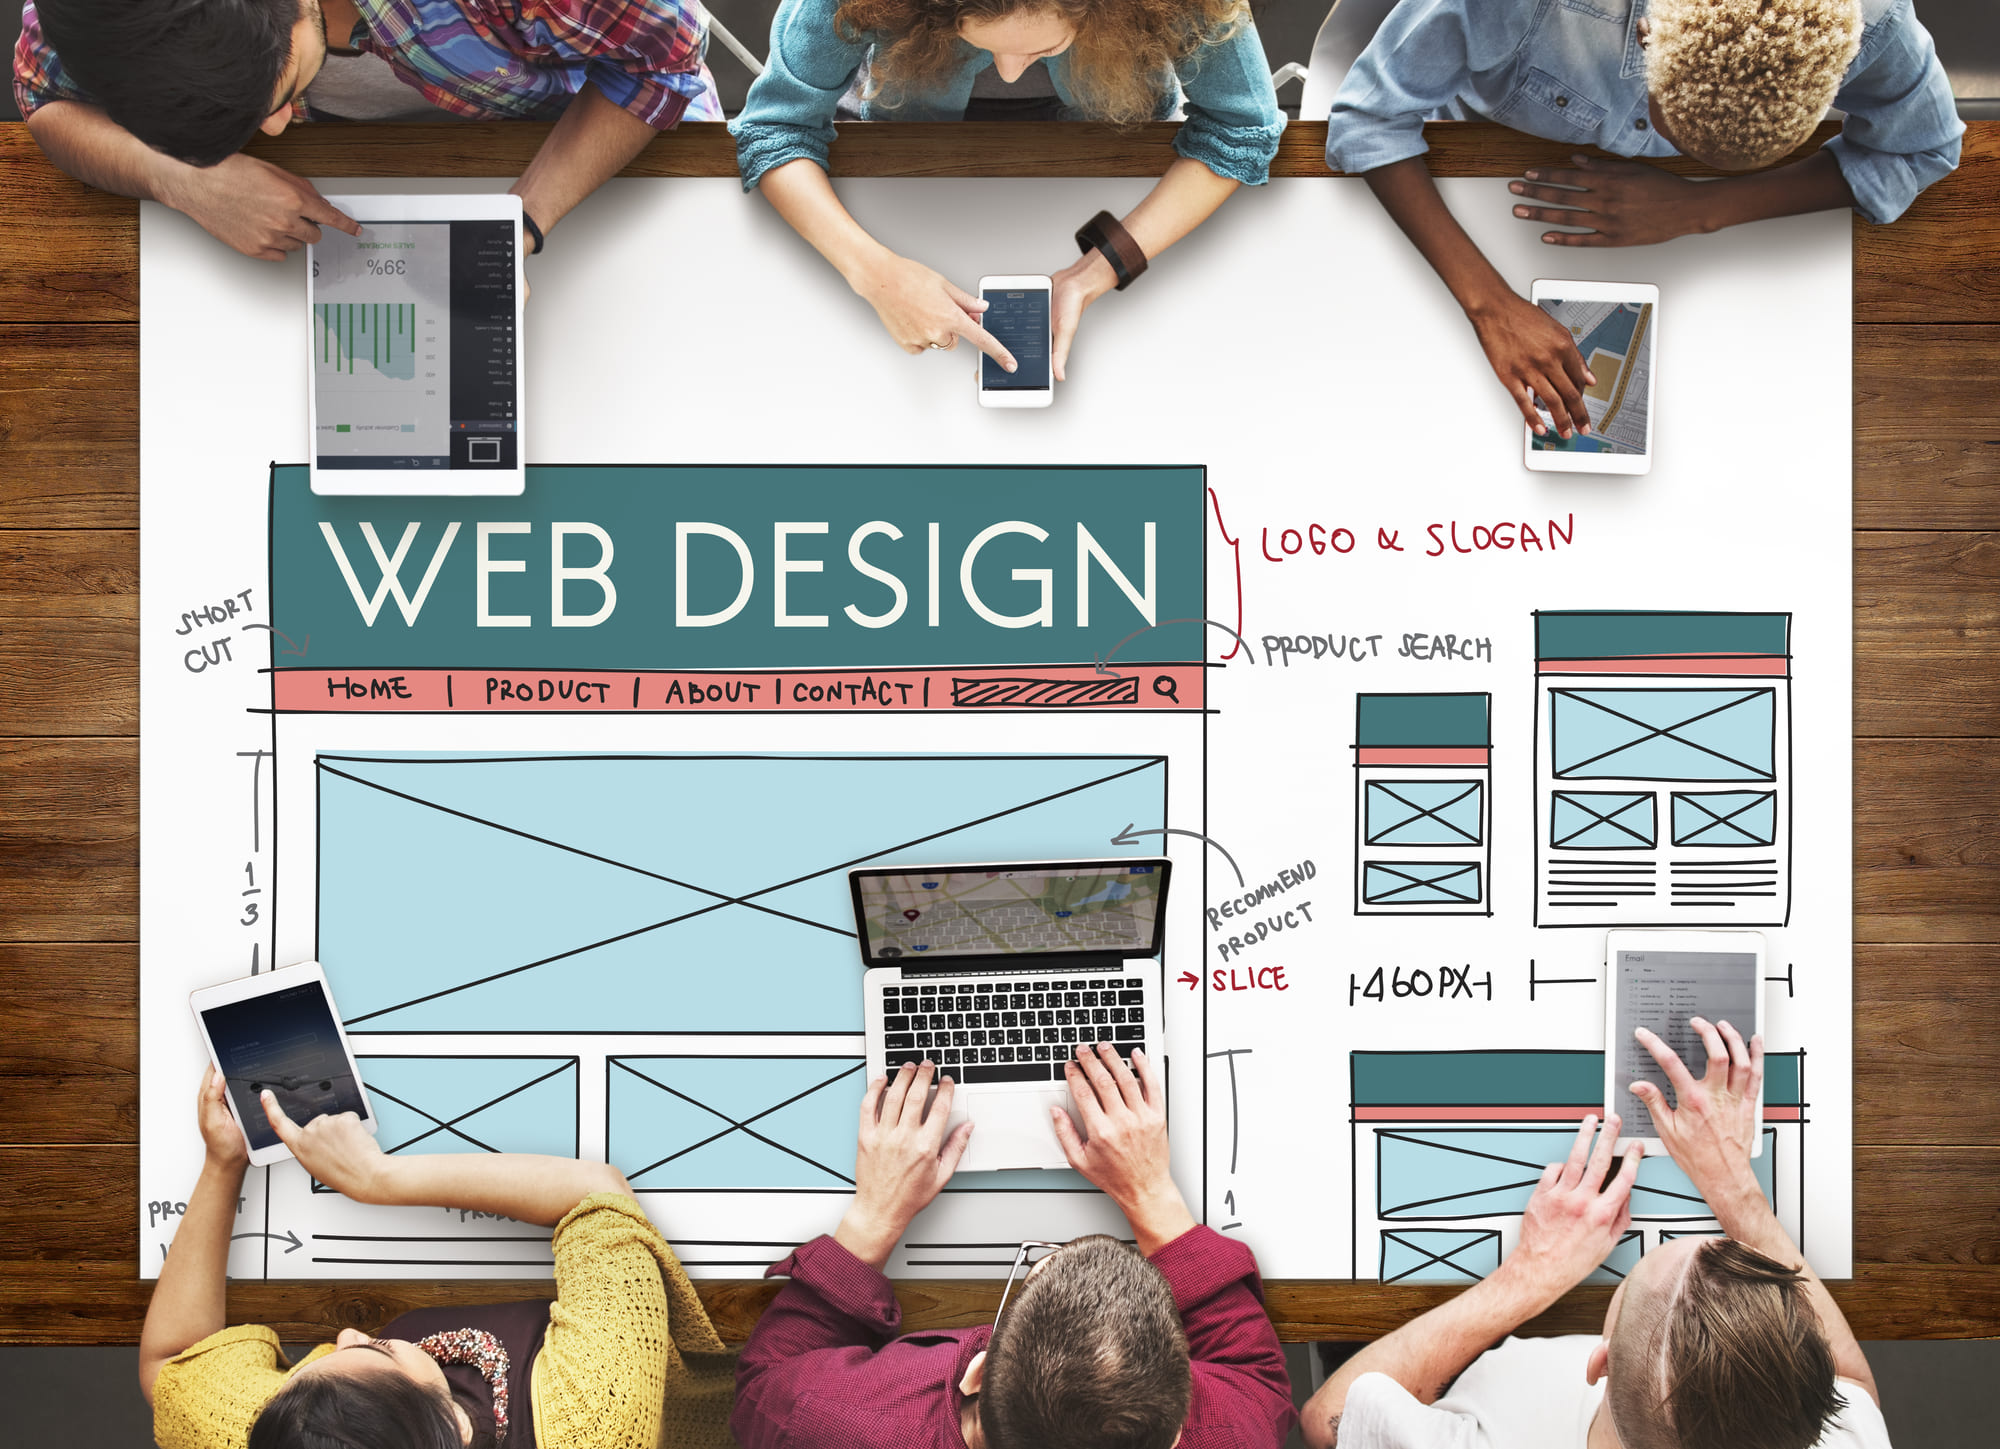 web designing team planning